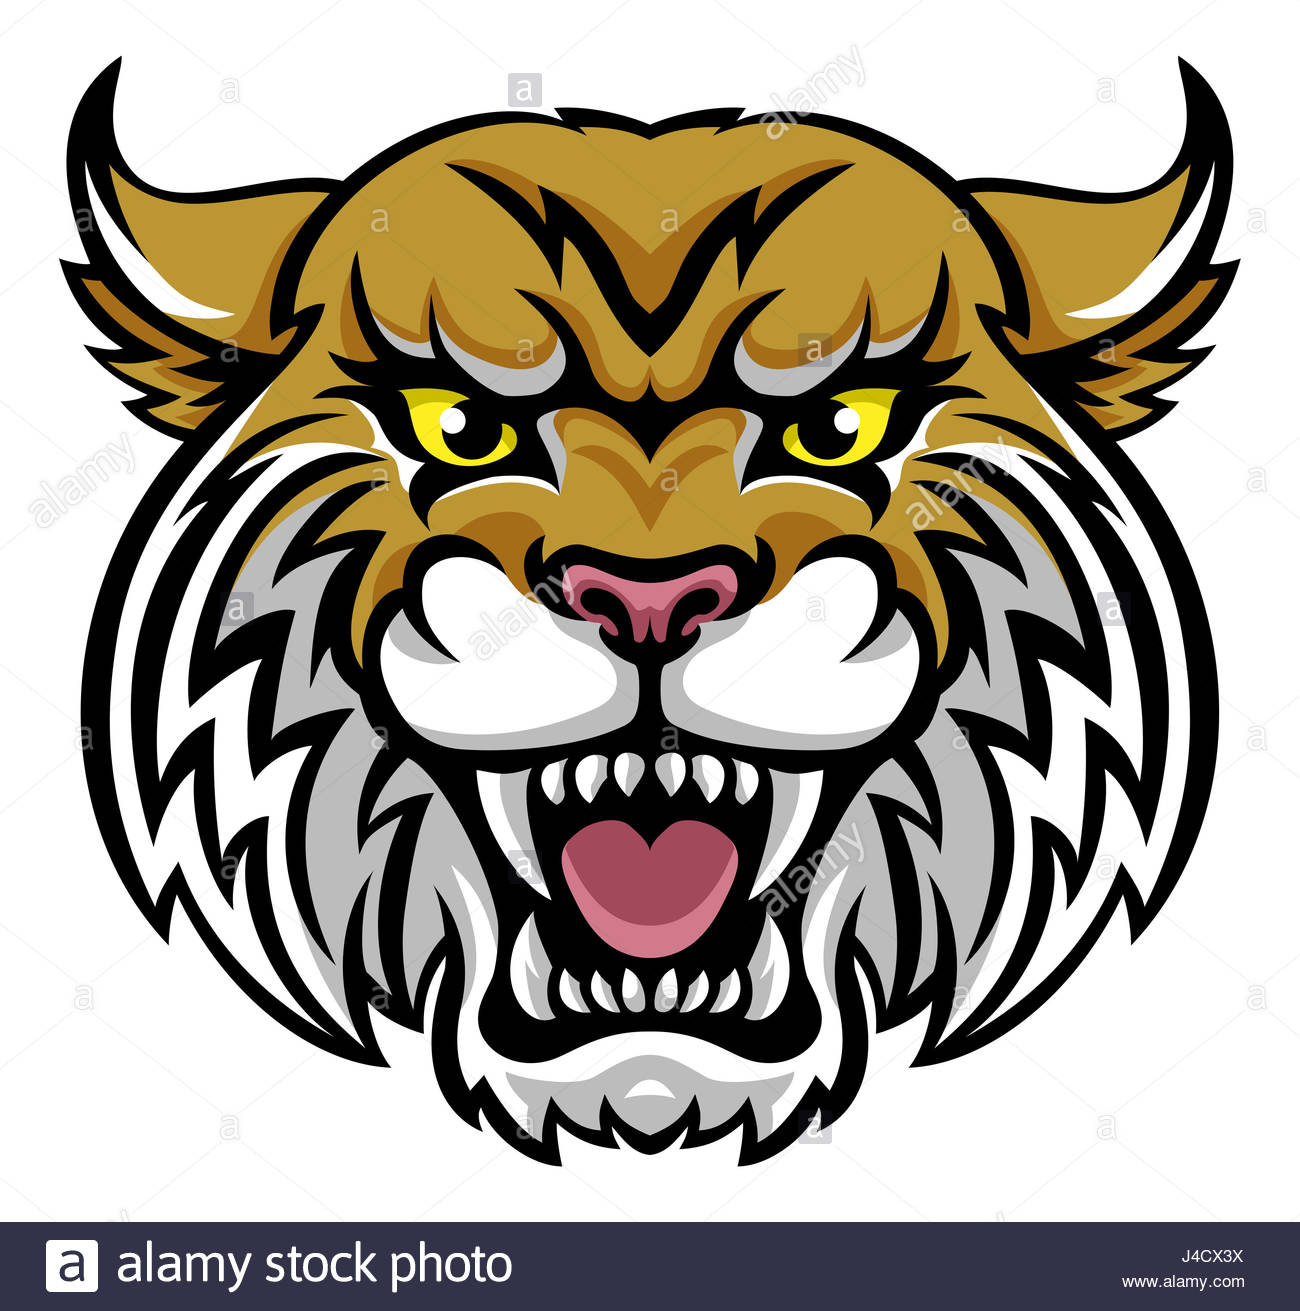 1300x1311 An Angry Looking Wildcat Or Bobcat Mascot Animal Character Stock